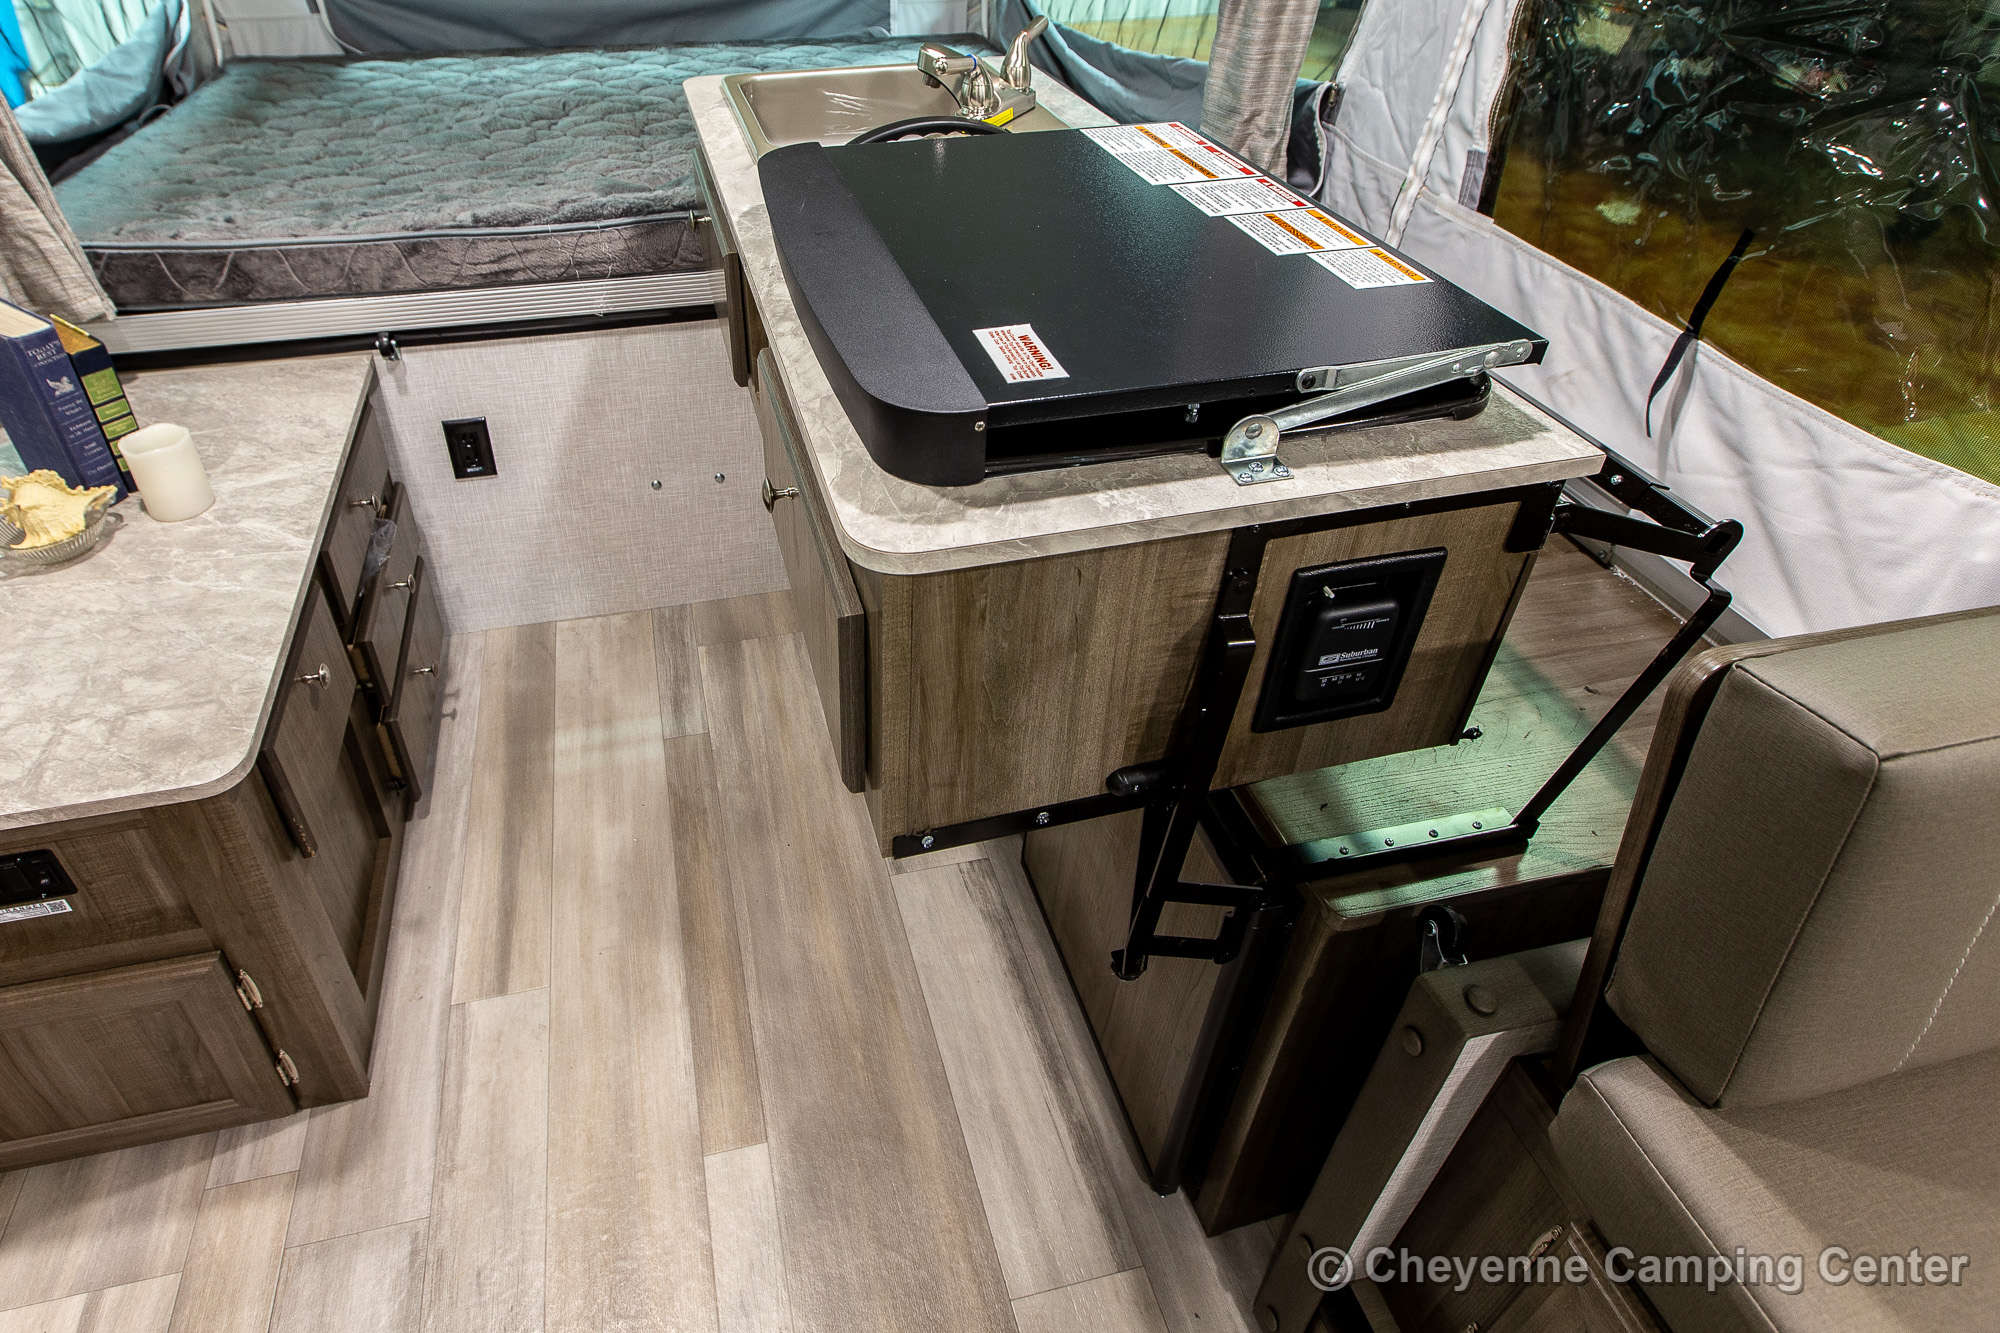 2022 Forest River Flagstaff Sports Enthusiast 28TSCSE Toy Hauler Folding Camper Interior Image